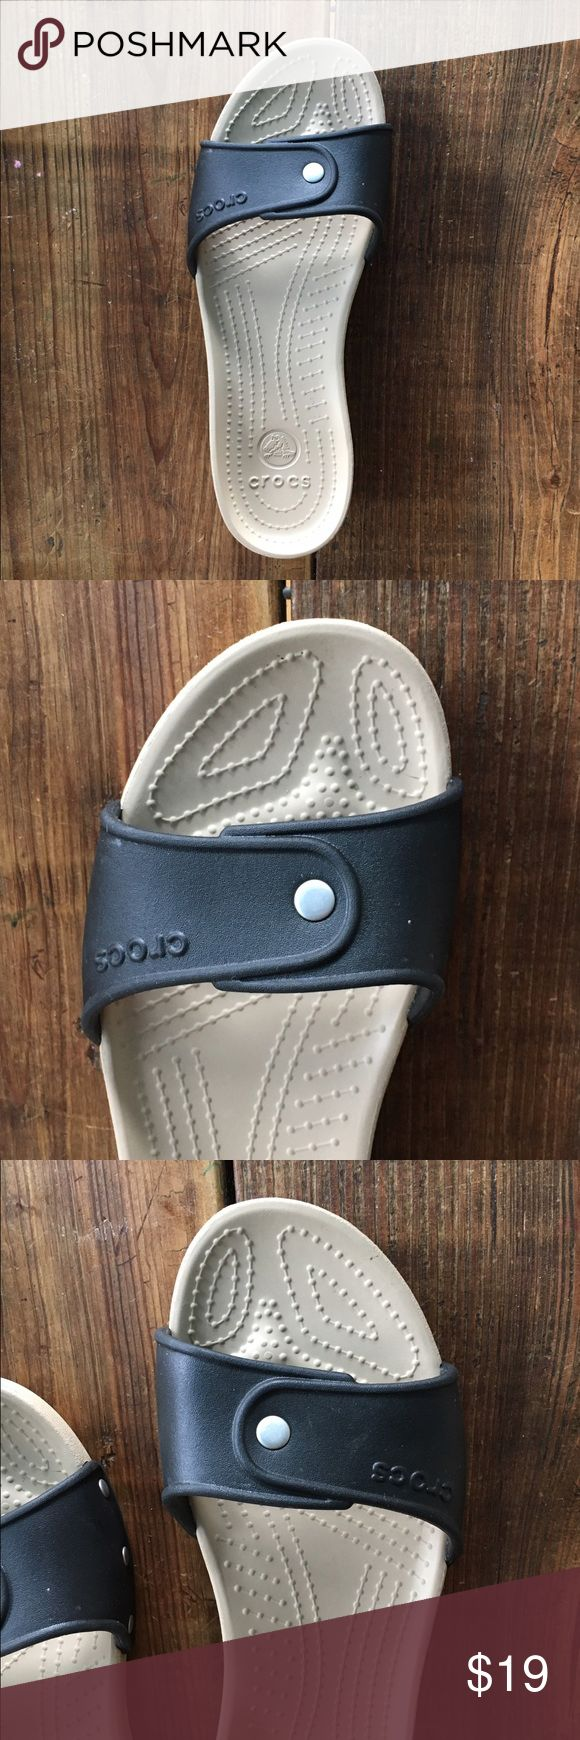 Womens Crocs Size 8 Cute! NWOT Display Shoe Womens Crocs Size 8 Cute! NWOT Display Shoe Please see photos for details or message with questions, thanks! CROCS Shoes Sandals